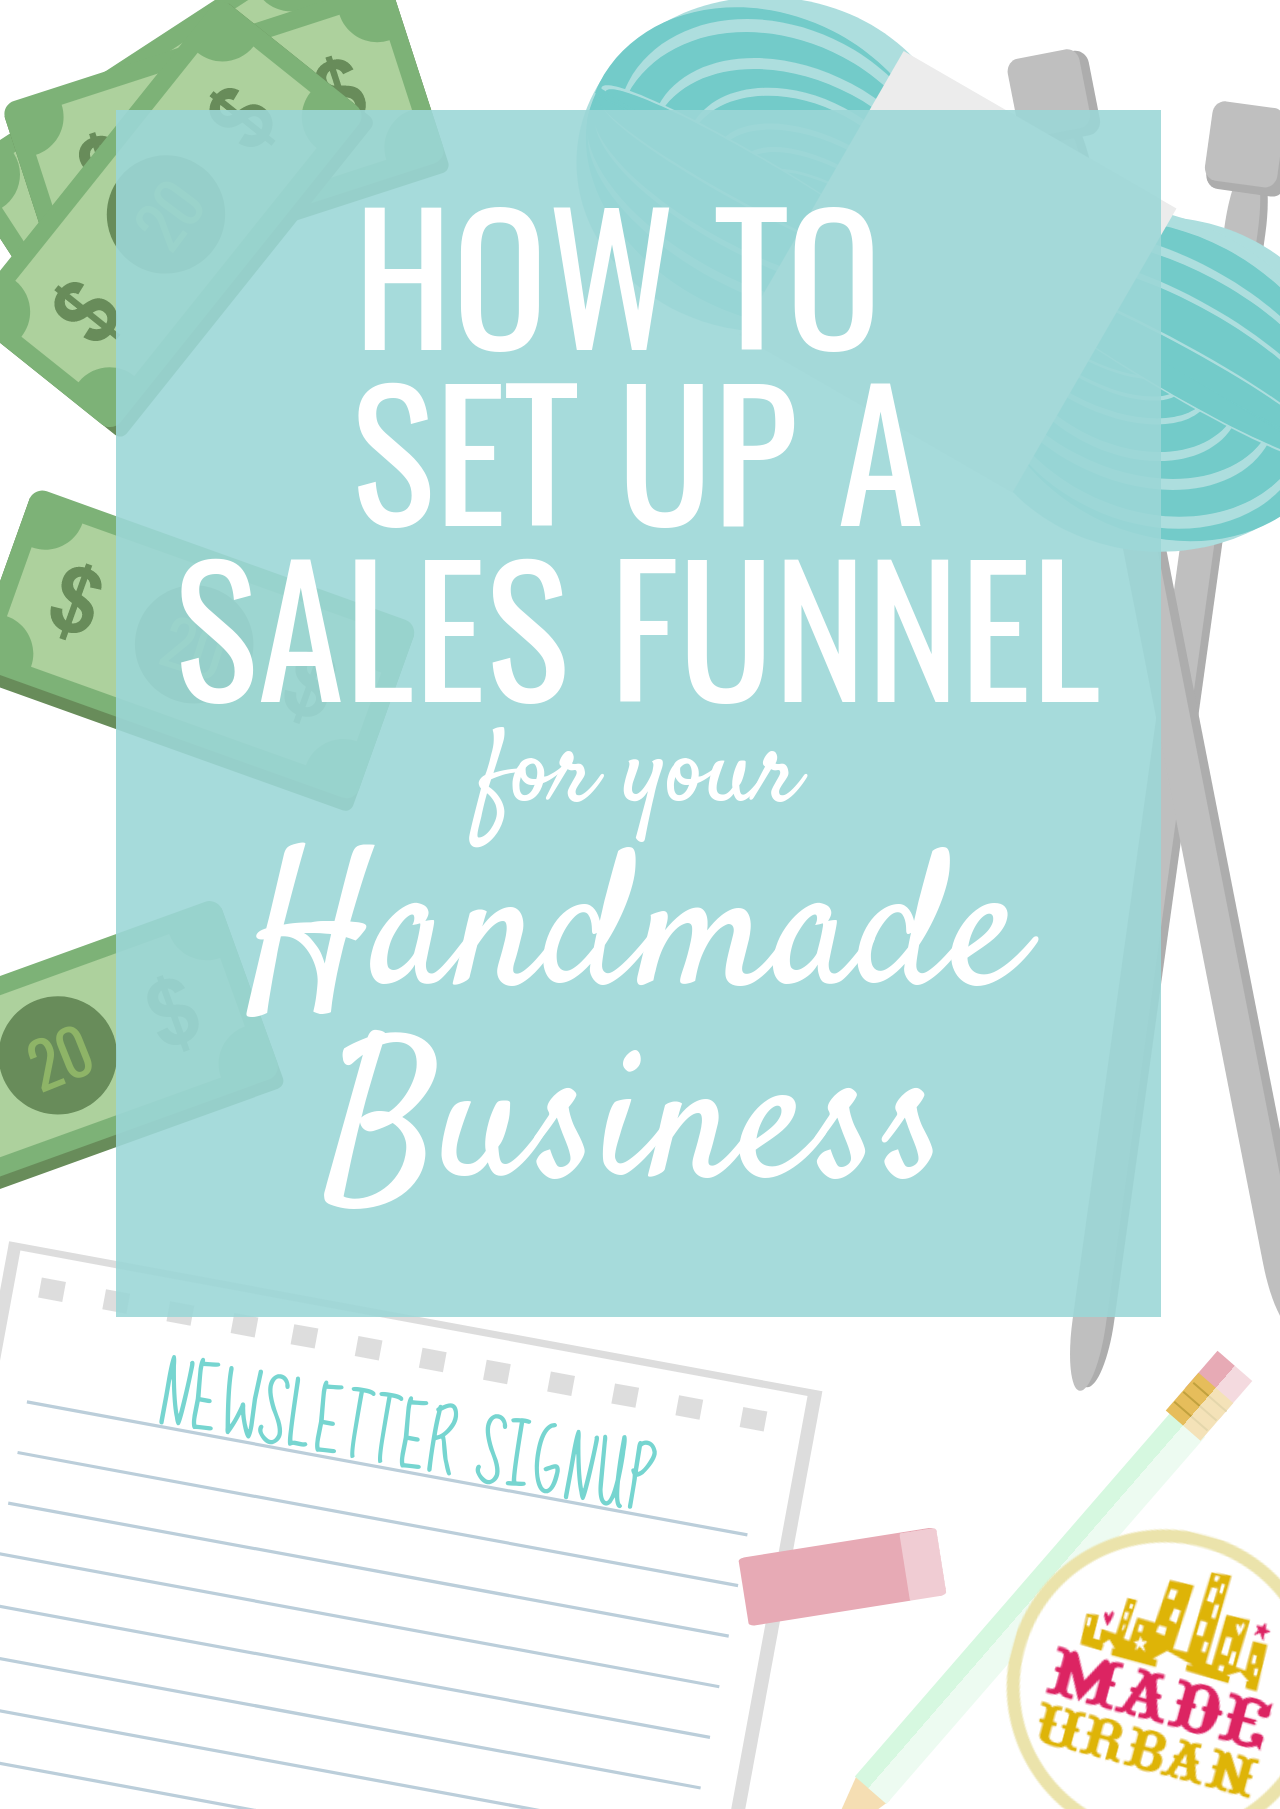 If your handmade business doesn't have a sales funnel, you're missing out on a lot of sales. On average 98% of shoppers will not buy, so you must give options aside from buy or don't buy if you want to boost sales. Here's how to do it...